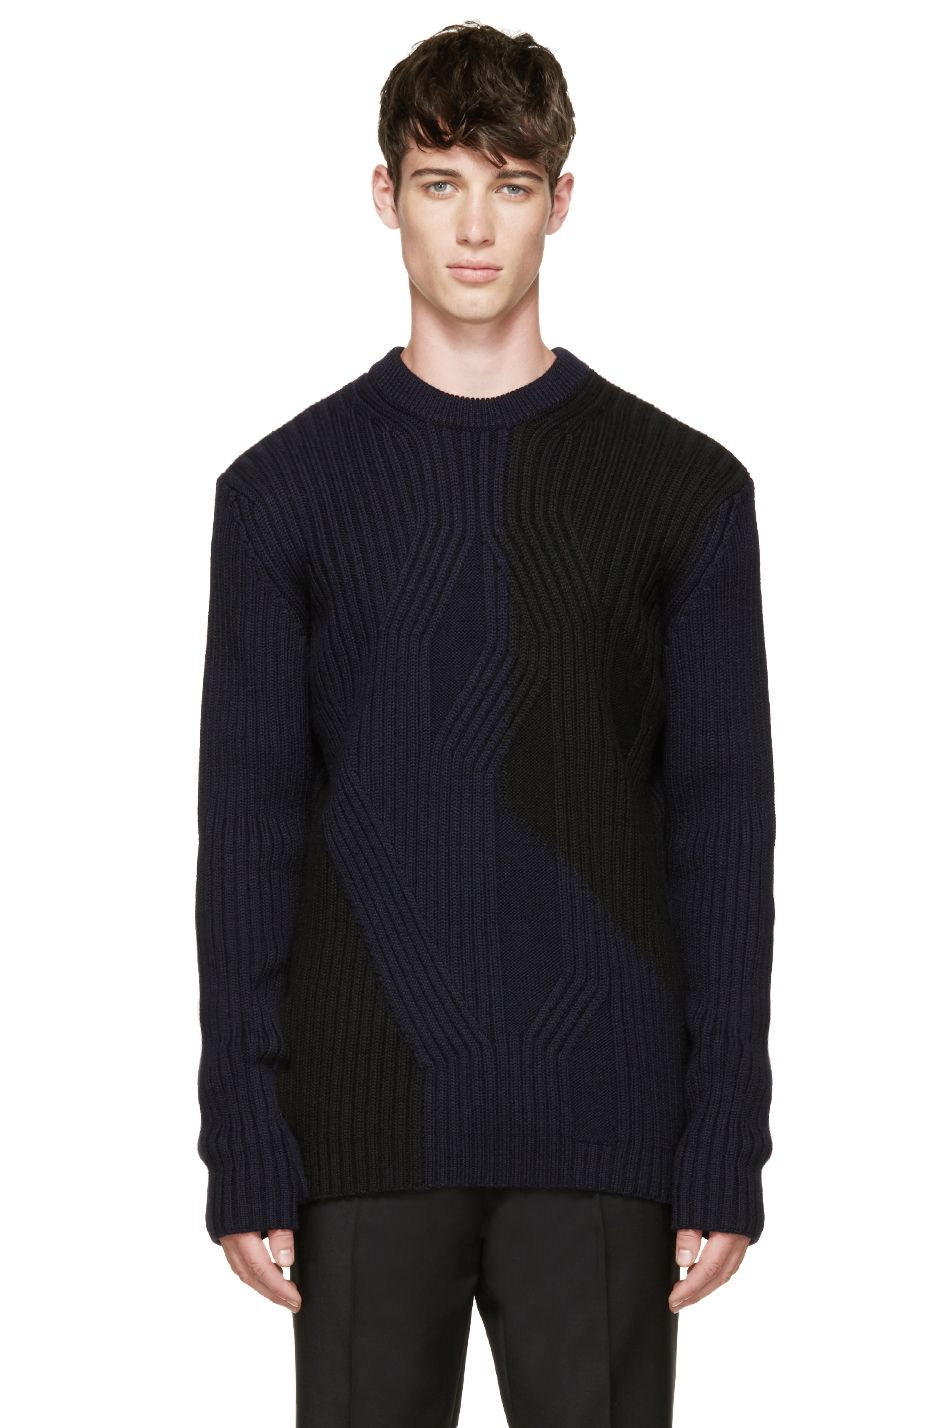 Long sleeve irregular cable knit sweater in black and dark navy ...